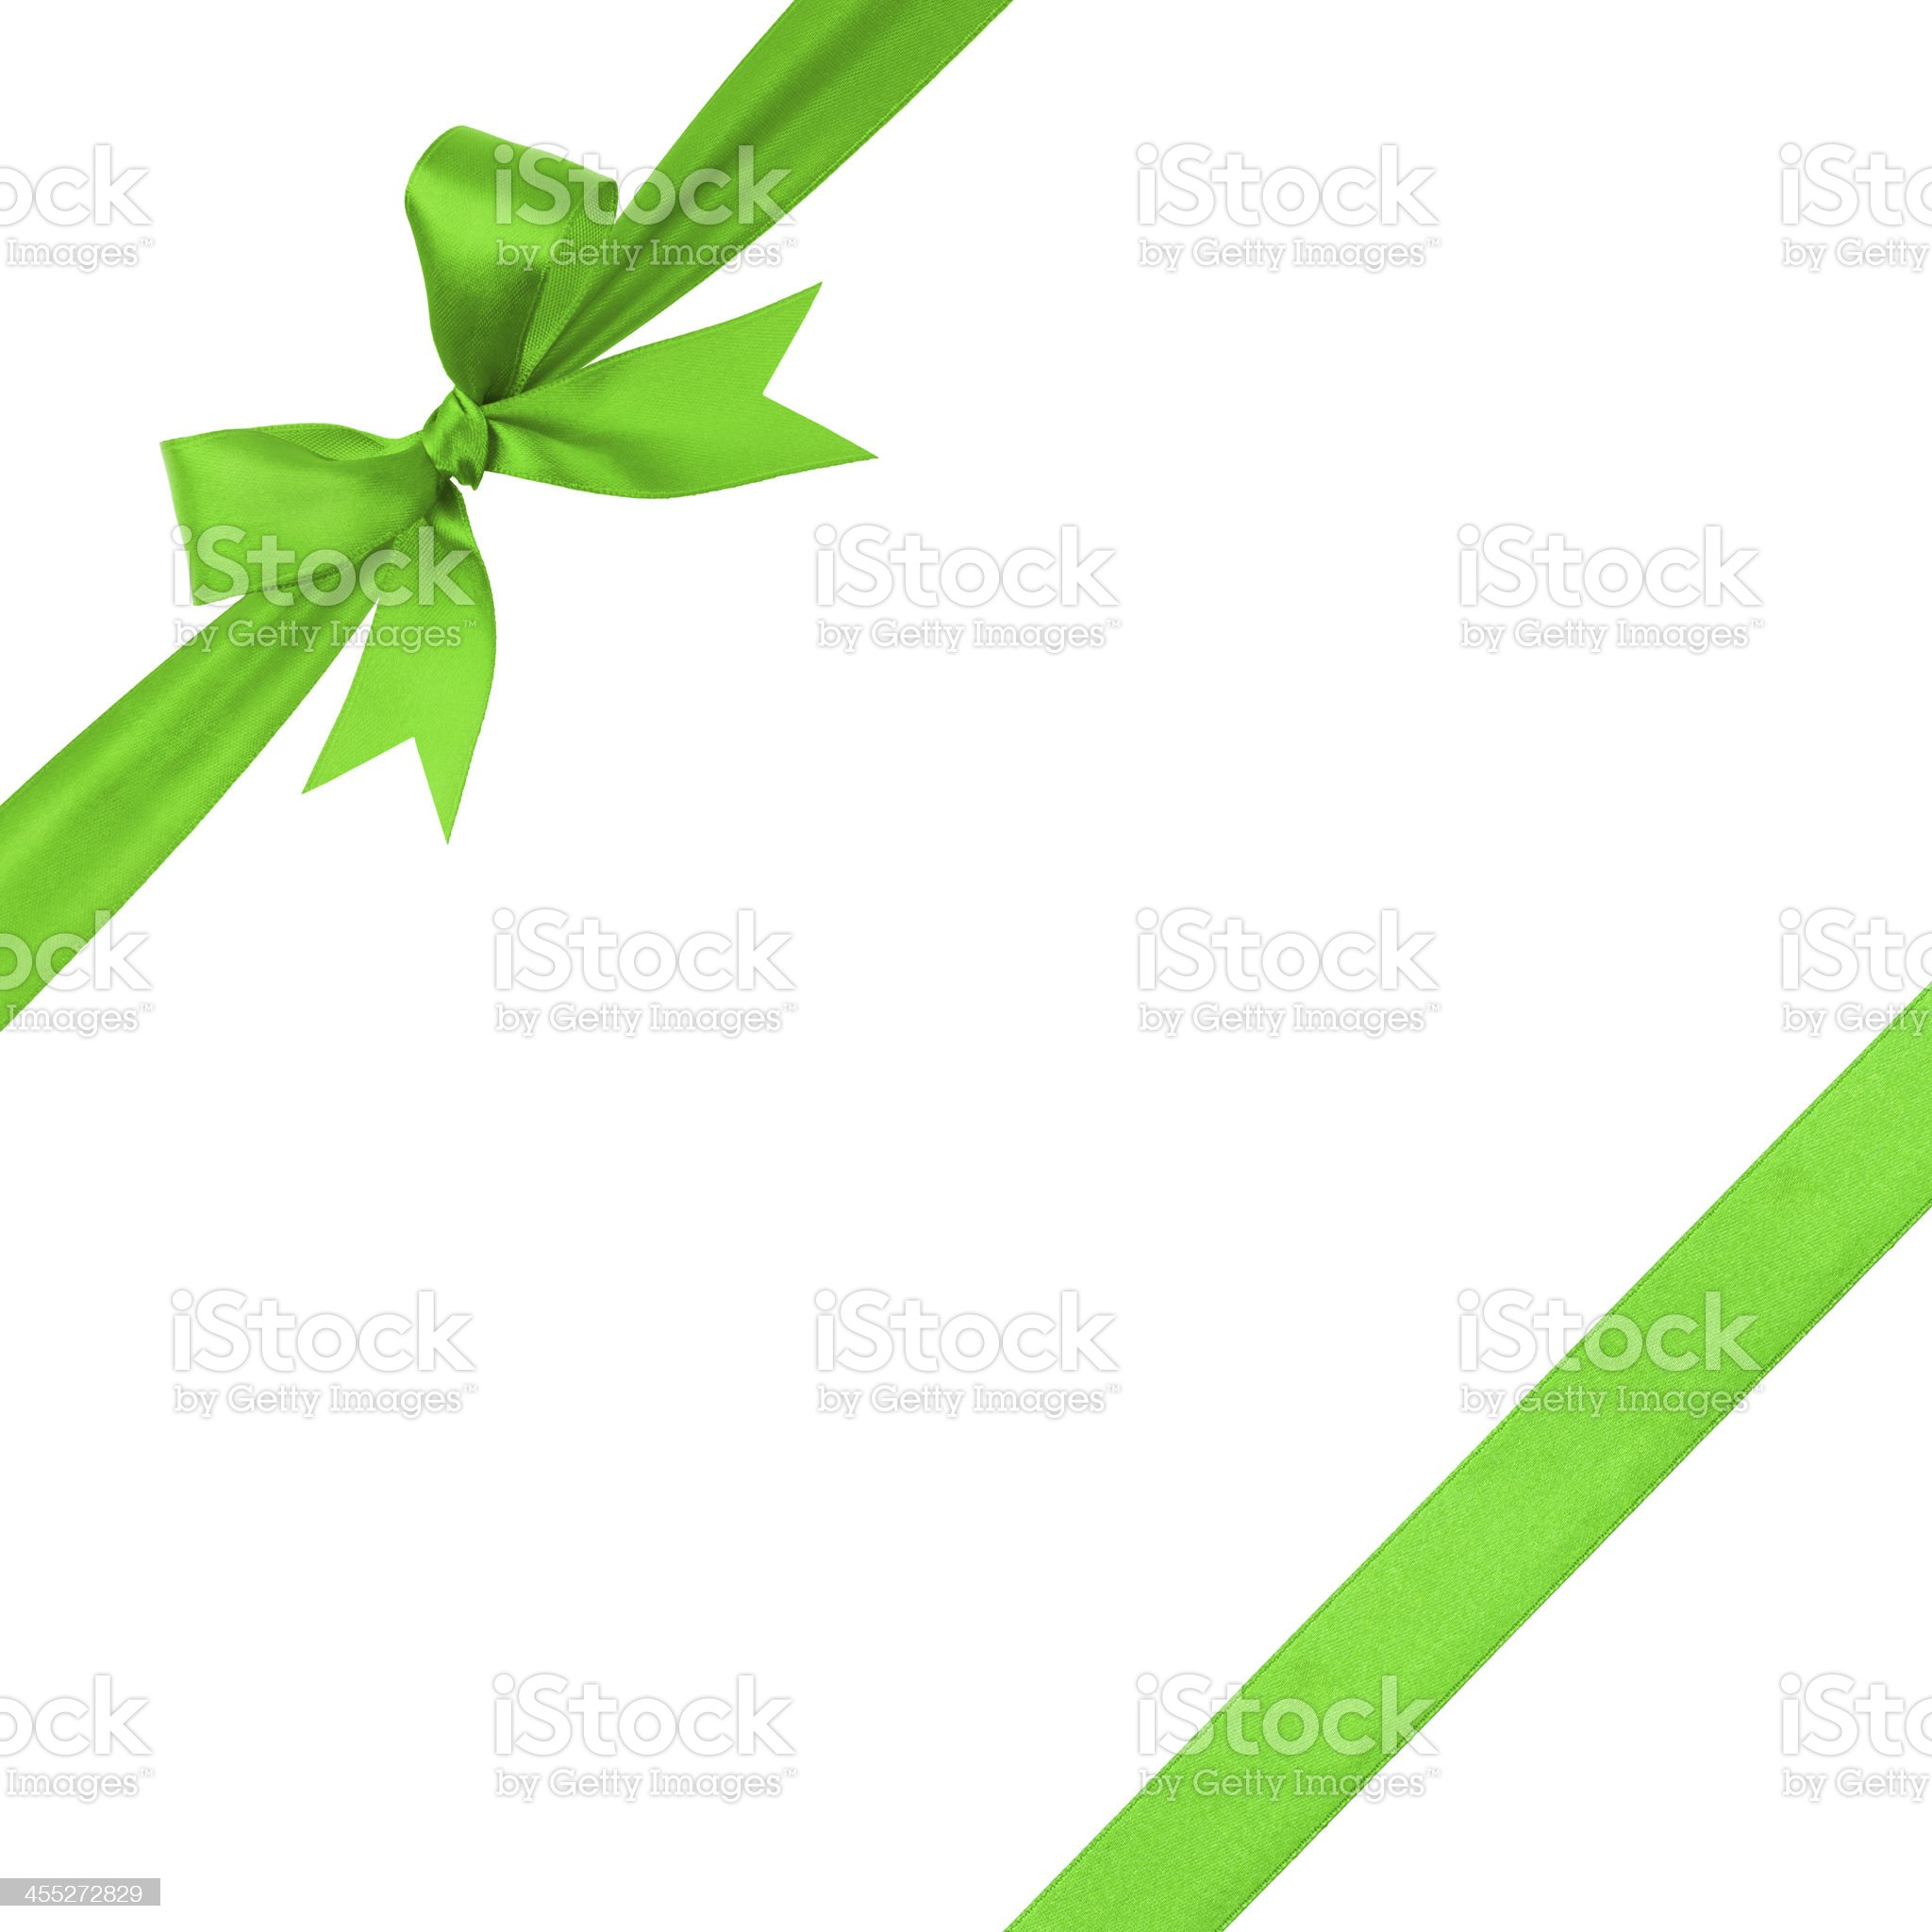 green simple tied ribbon bow composition royalty-free stock photo